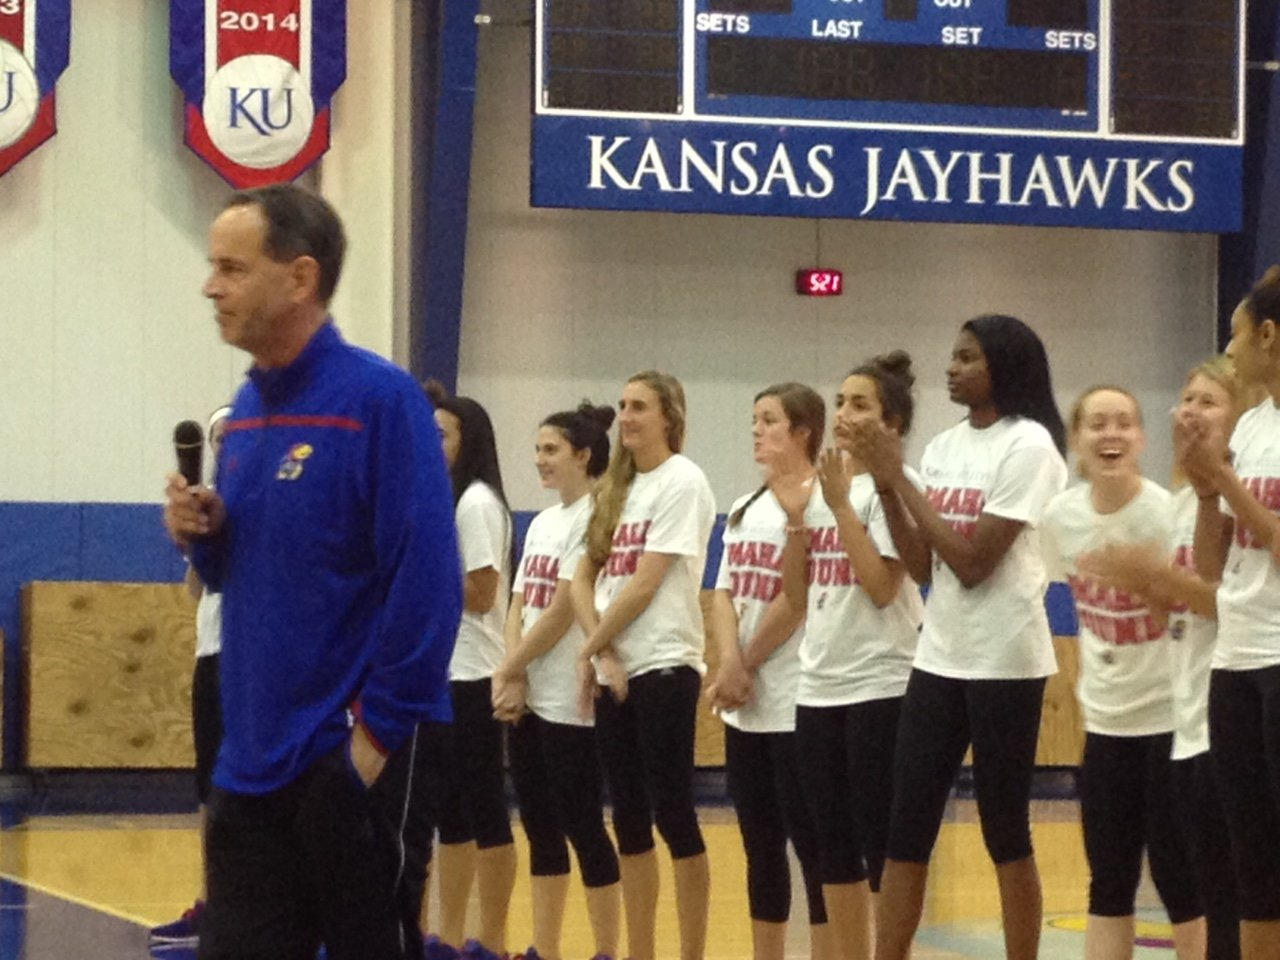 KU Volleyball Coach Ray Bechard and his players address fans during a welcome home celebration Sunday night.  The volleyball team has advanced to the first NCAA Final Four in school history.  KU plays Nebraska Thursday in Omaha in the national semi-finals.  (Blurry photo by J. Schafer)